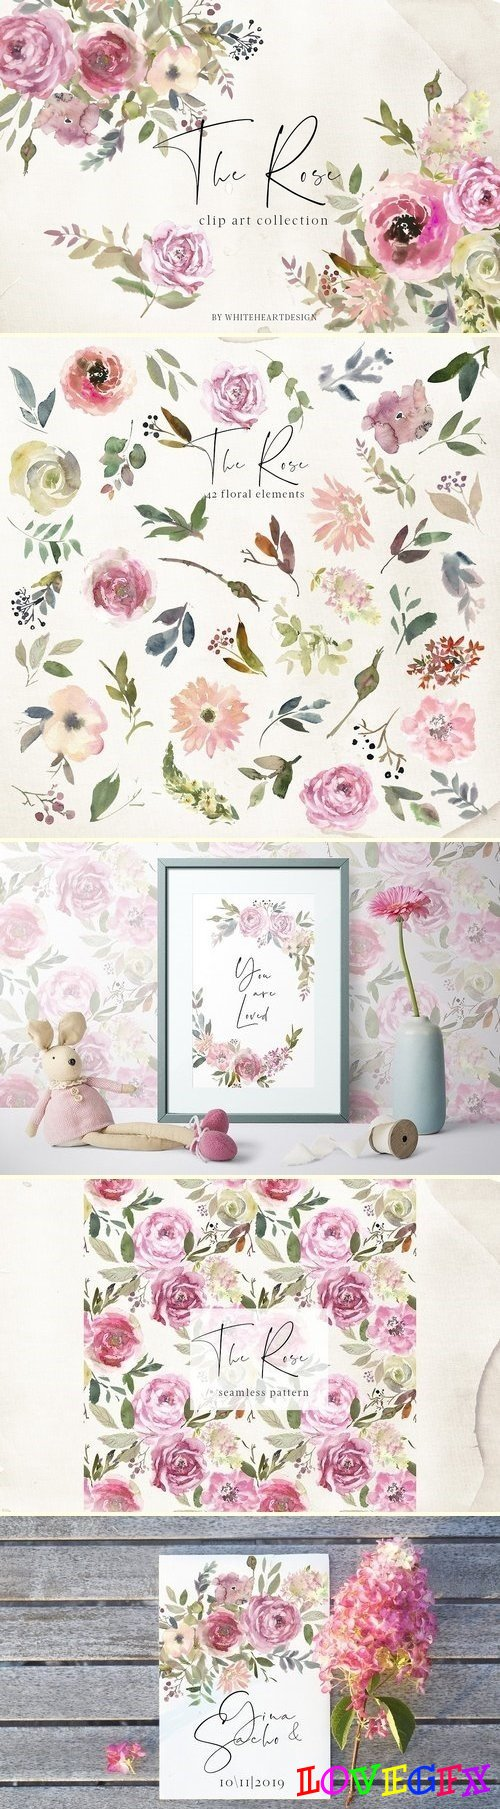 The Rose Watercolor Floral Clipart - 2888705